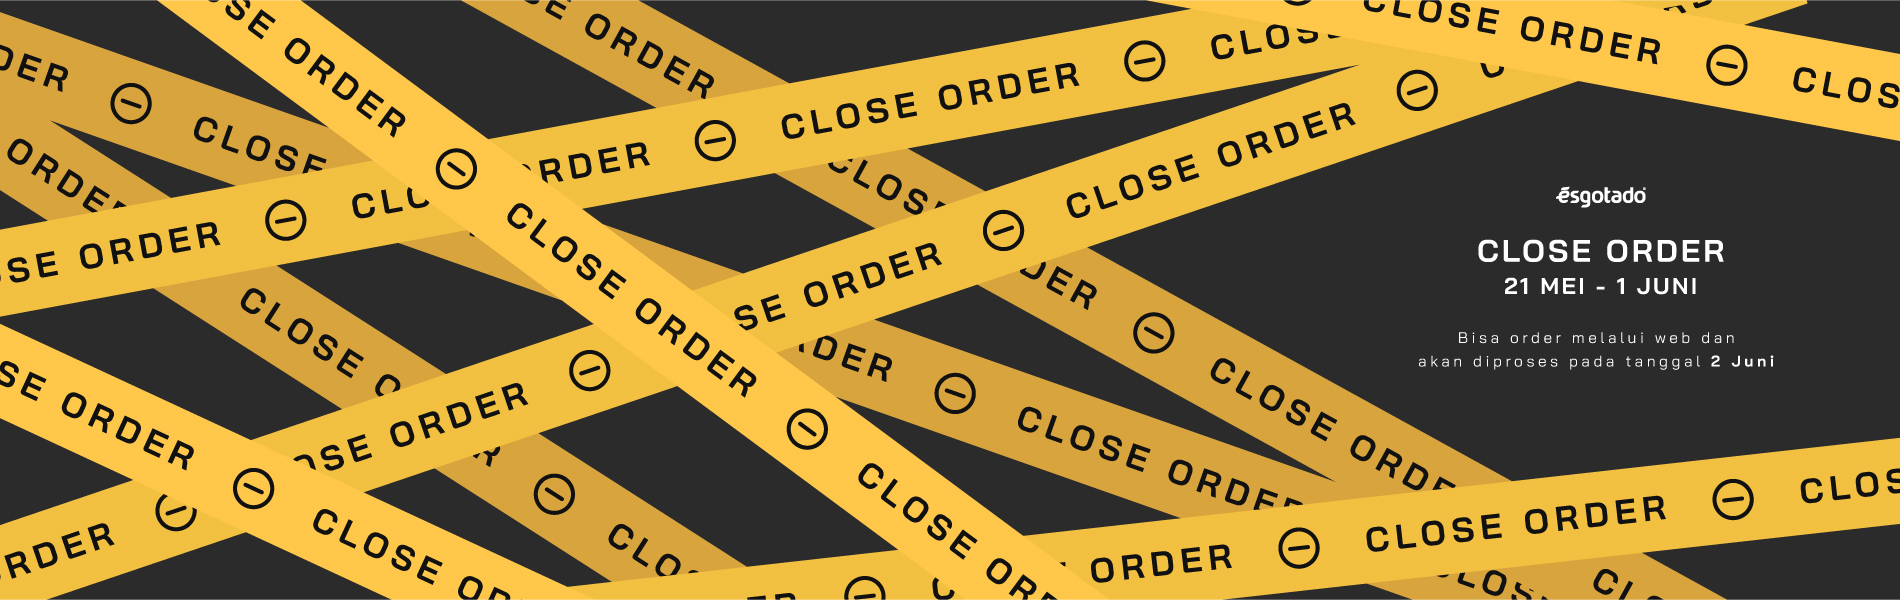 banner closed order 2020